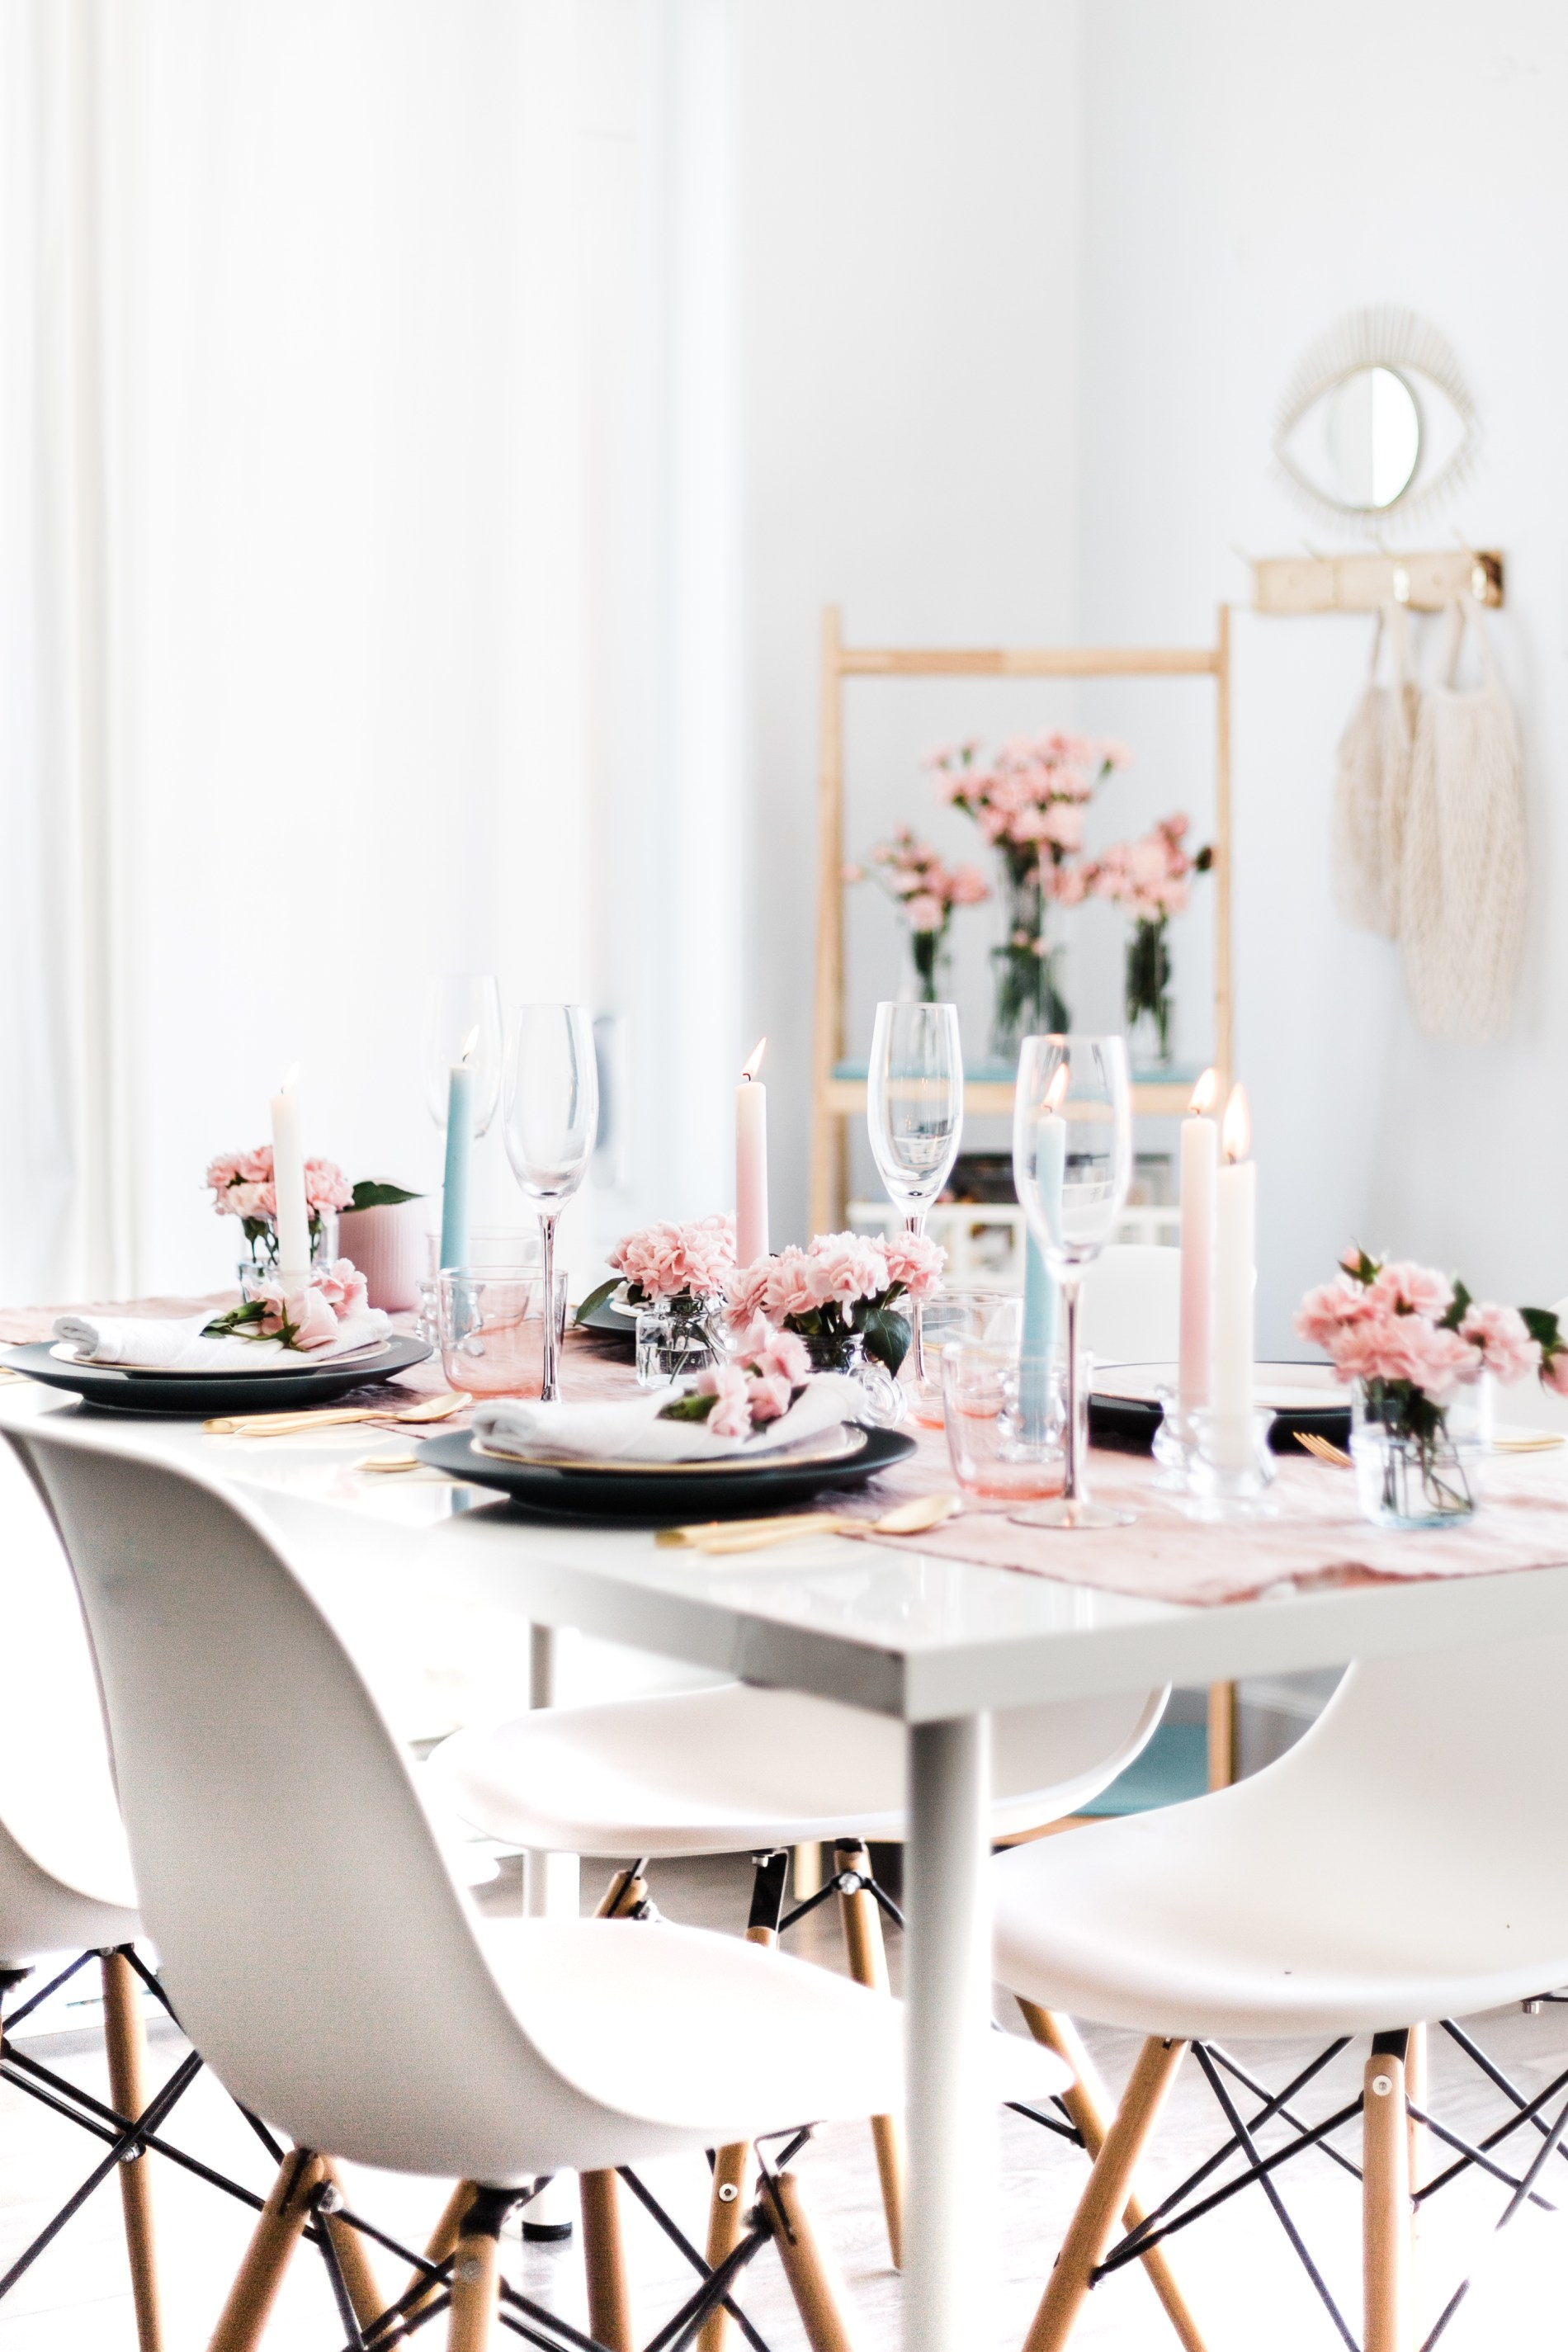 Floral Mother's Day Tablescape #mothersday #tablescape #tablesetting #springtable #entertaining